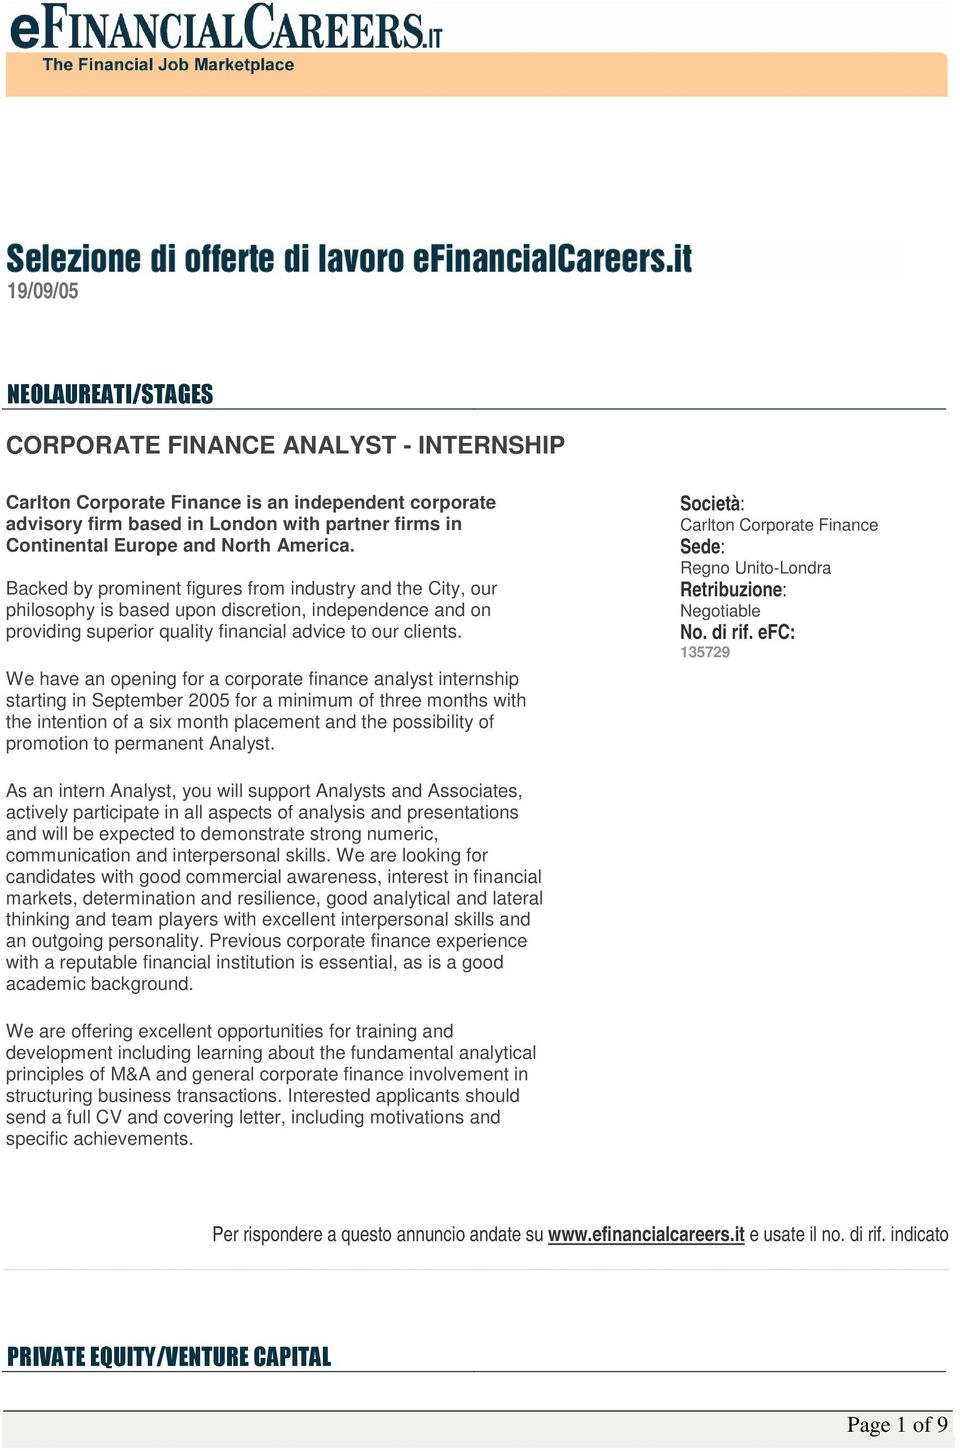 We have an opening for a corporate finance analyst internship starting in September 2005 for a minimum of three months with the intention of a six month placement and the possibility of promotion to